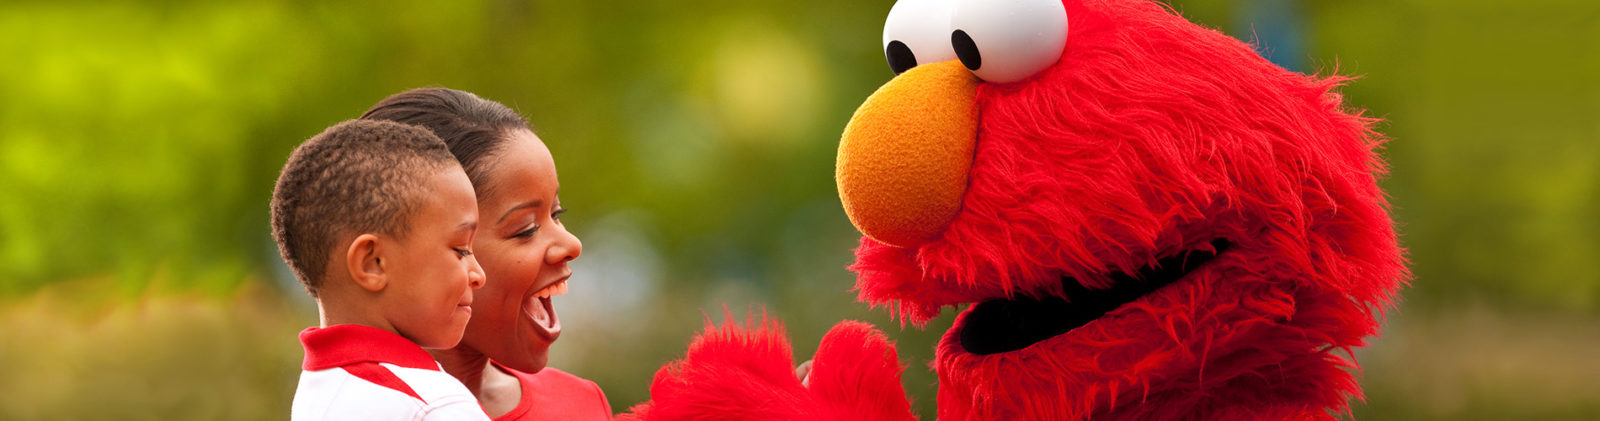 SeaWorld Orlando Sesame Street Land Elmo's Birthday 2020